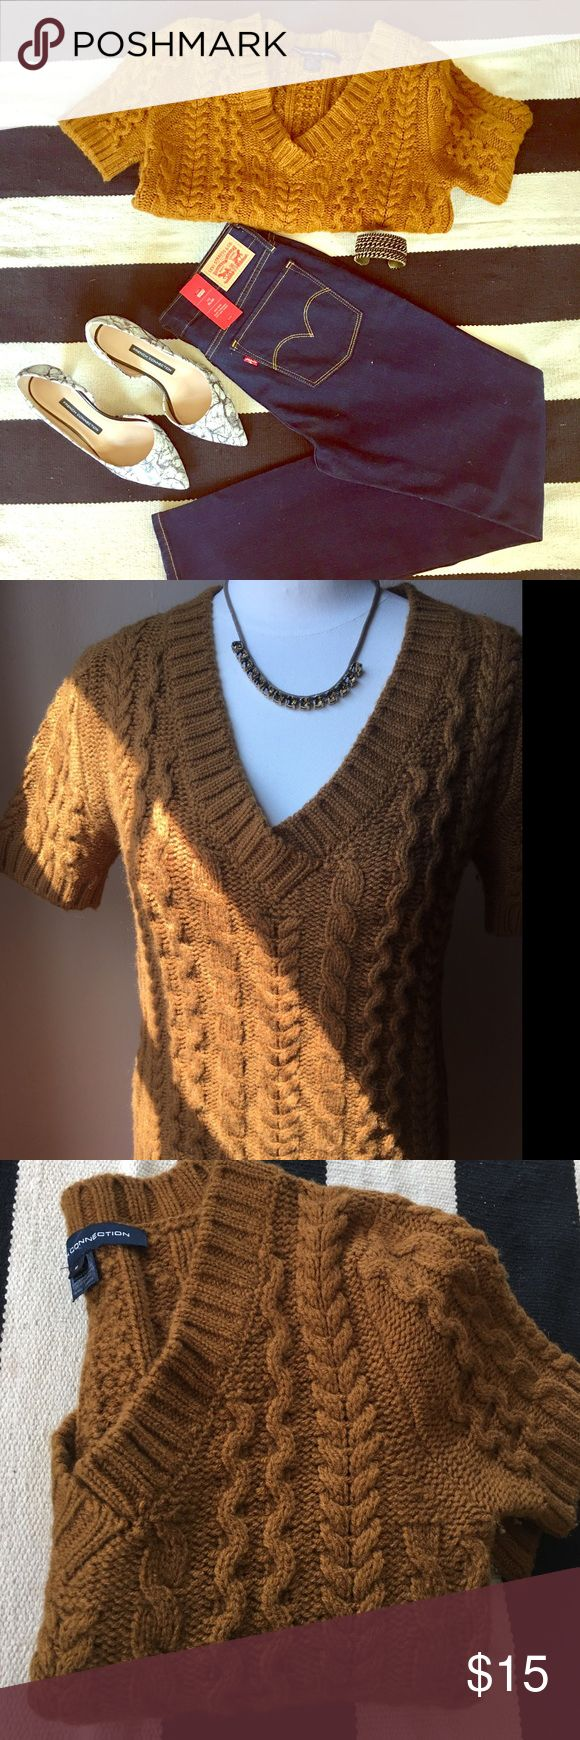 French Connection Short Sleeves Sweater Short Sleeves, Size Medium,  wool/acrylic. I wore it once!     All items shown in cover photo are for sale! Check out my closet. 🤳🏻 French Connection Sweaters V-Necks